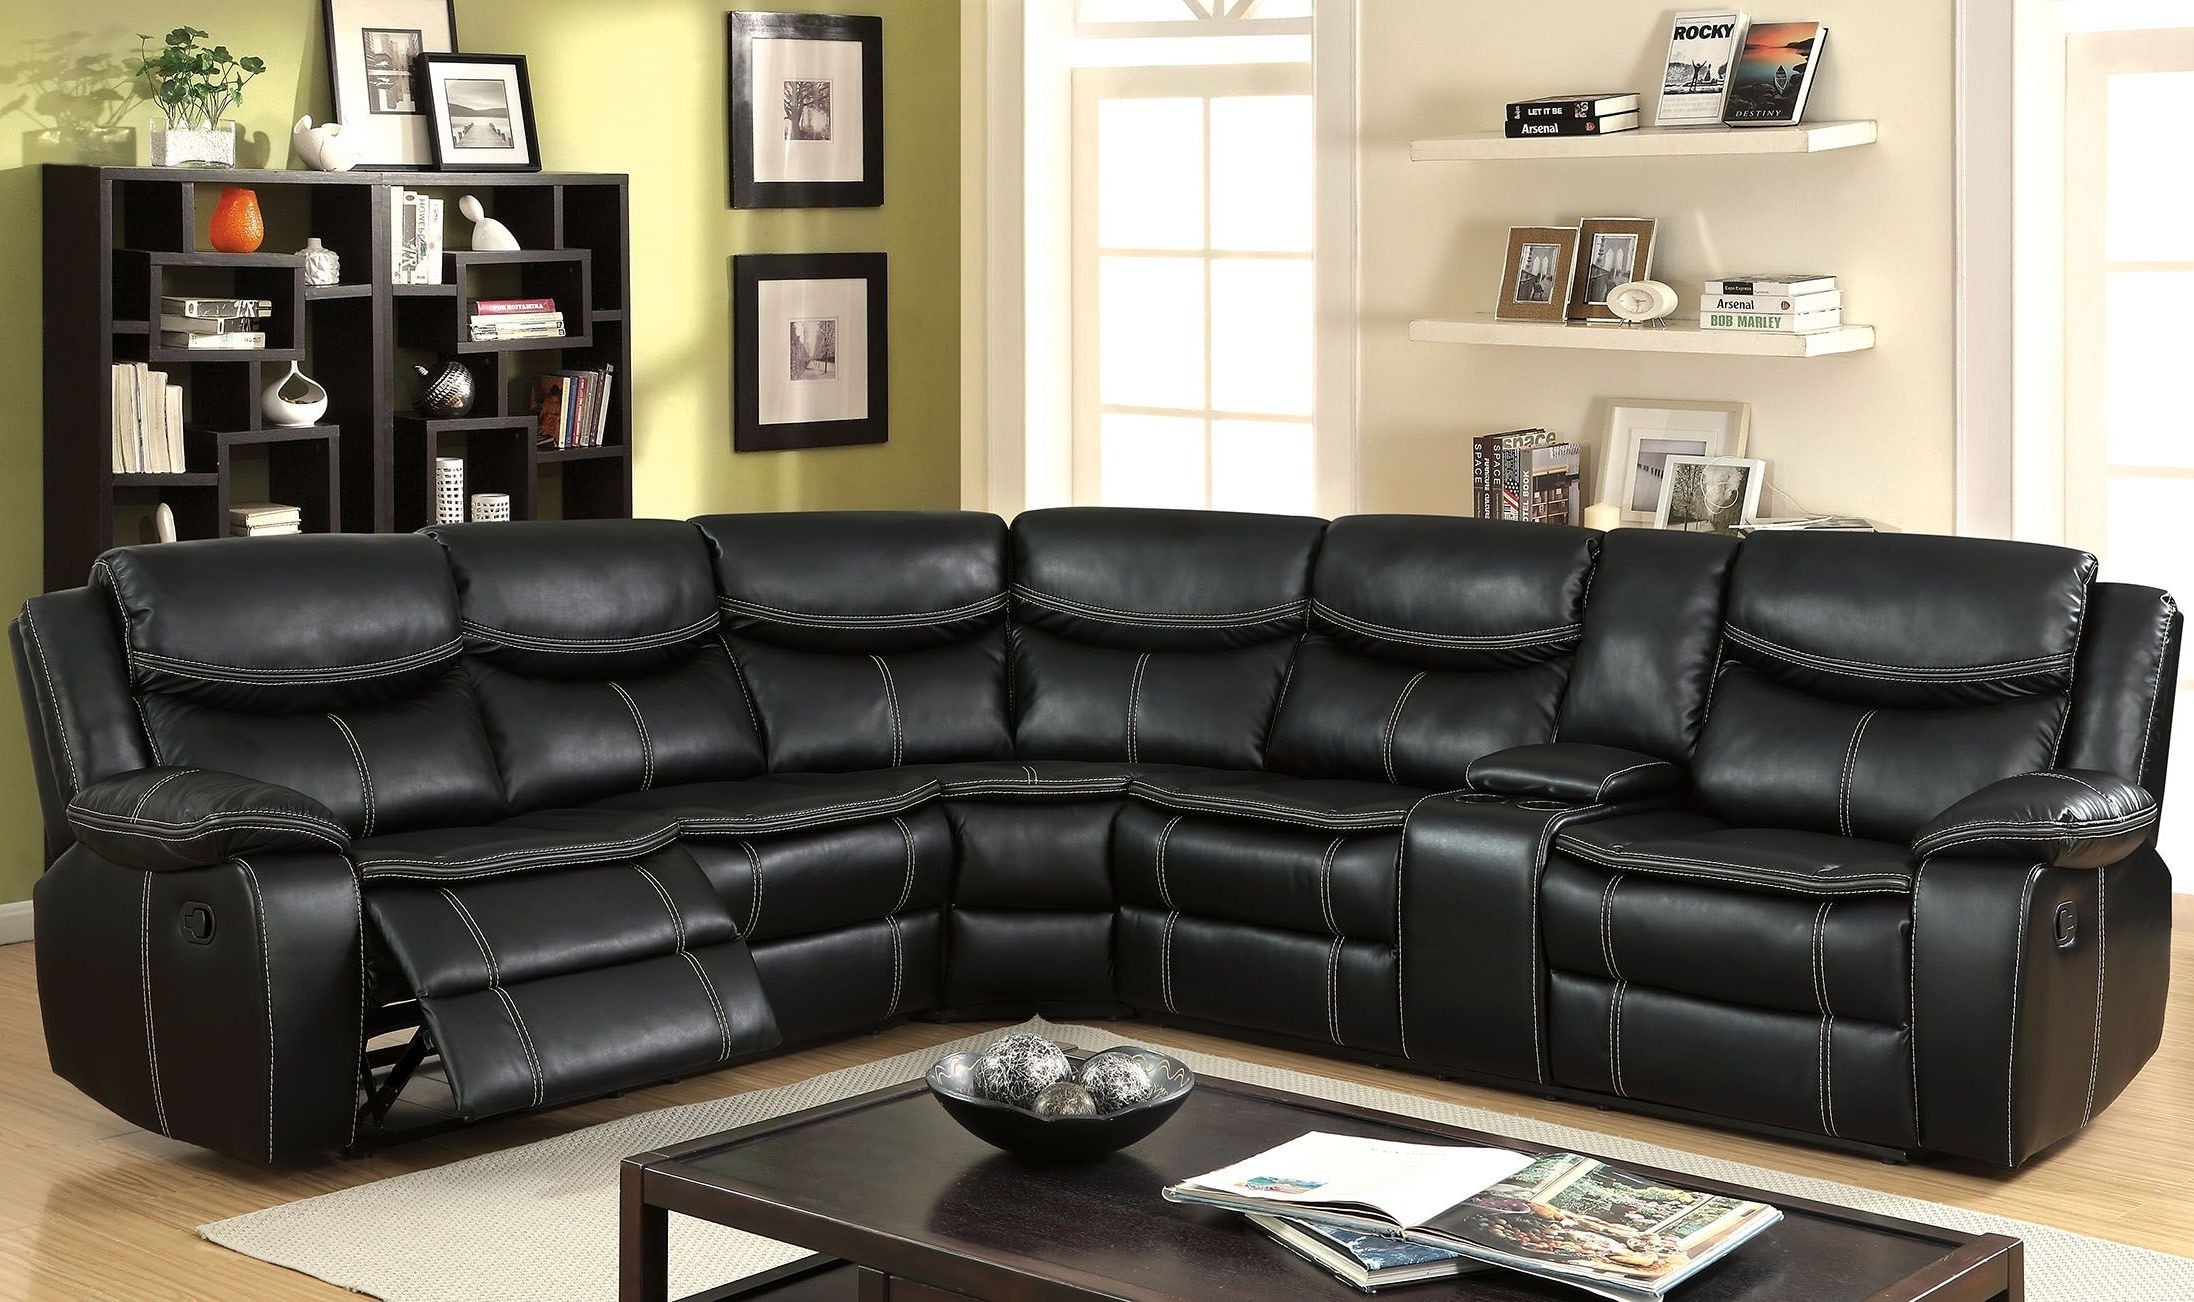 GATRIA II SECTIONAL RECLINER $1550